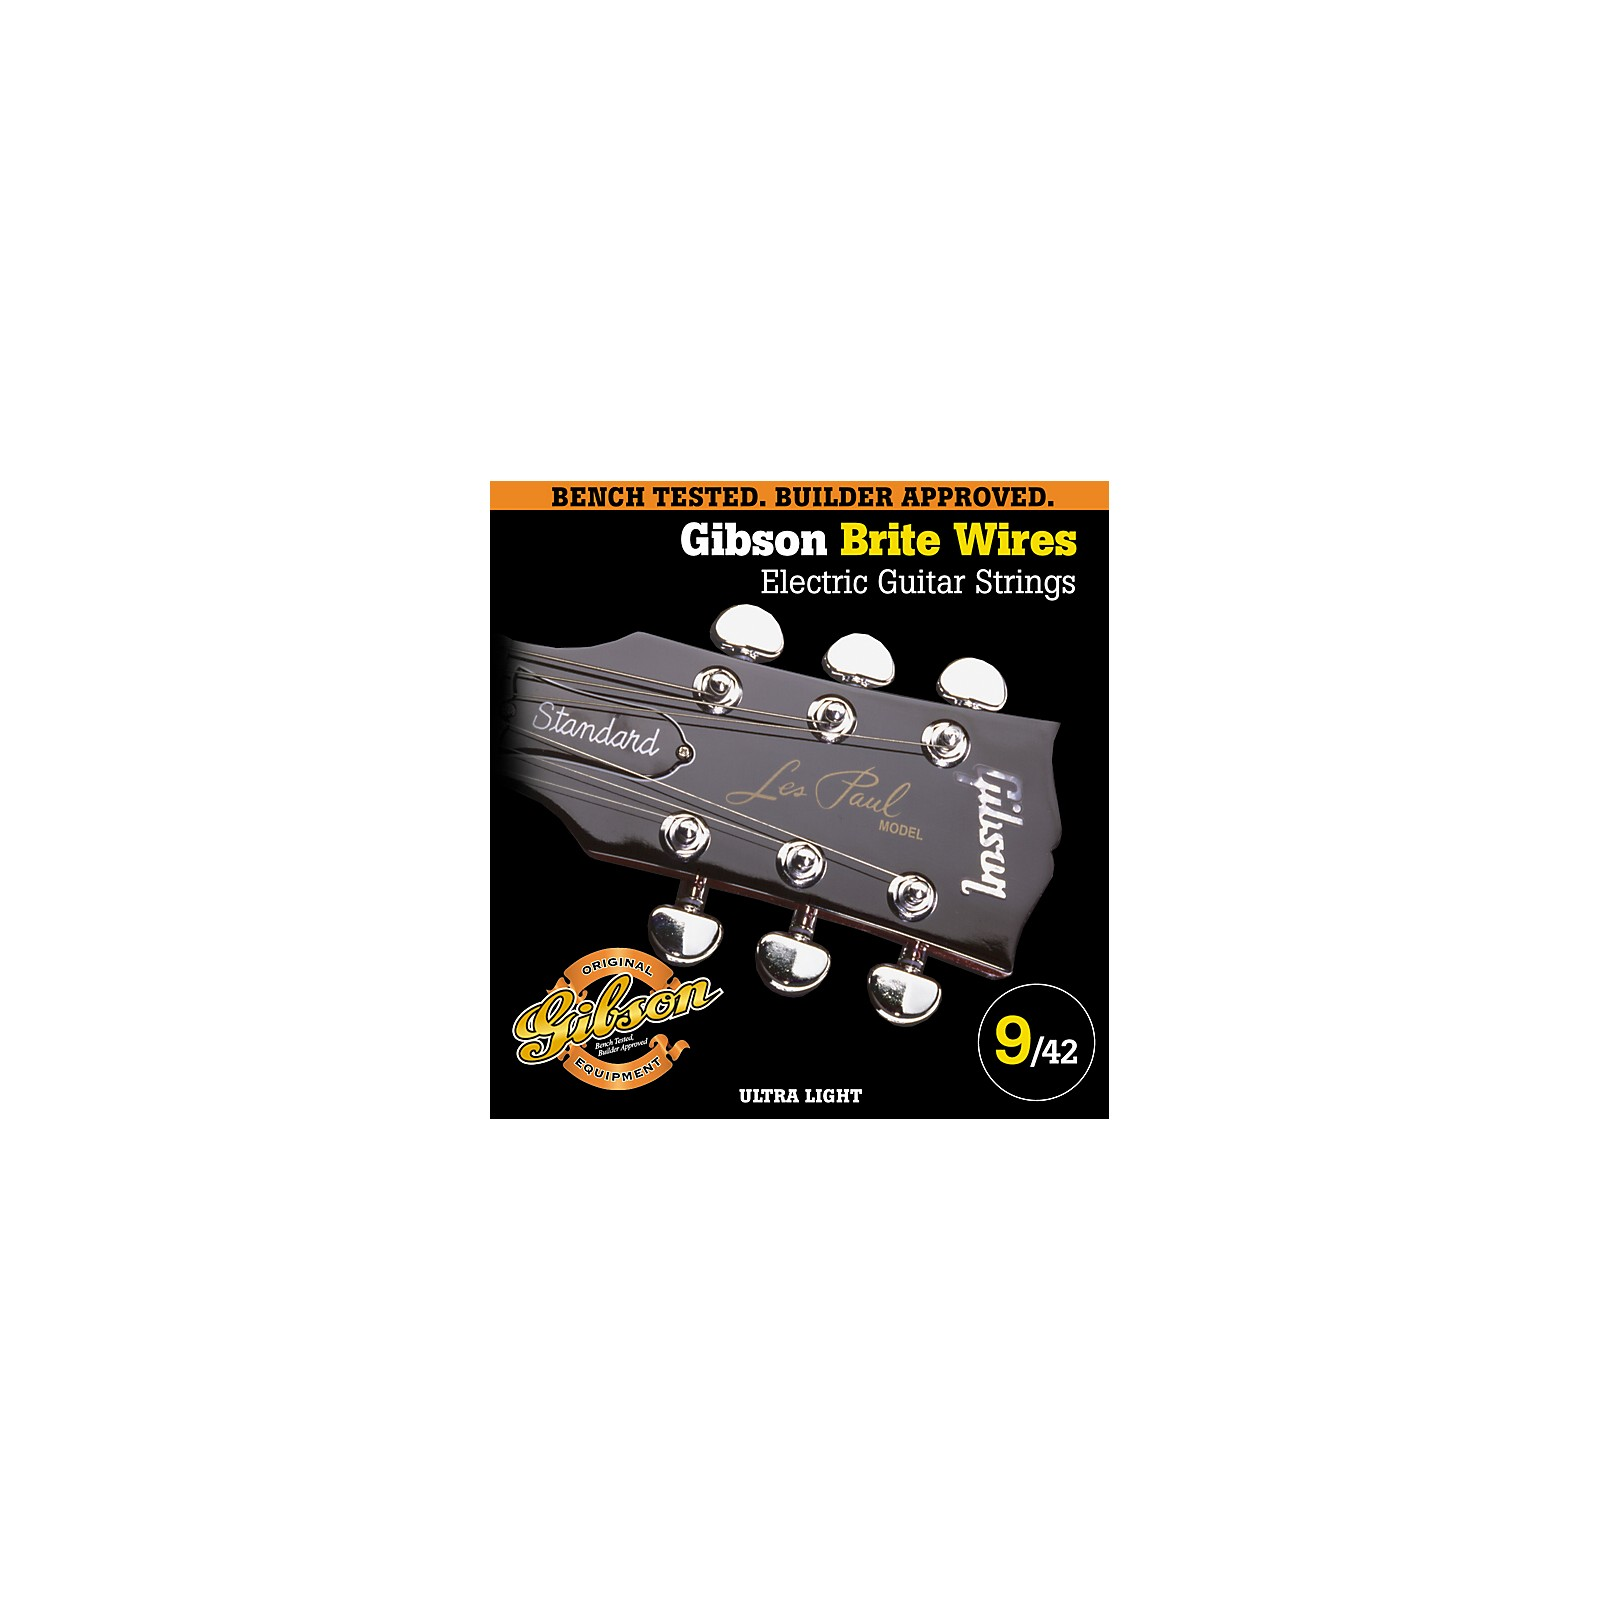 Gibson G700UL Ultra Light Brite Wires Electric Guitar Strings